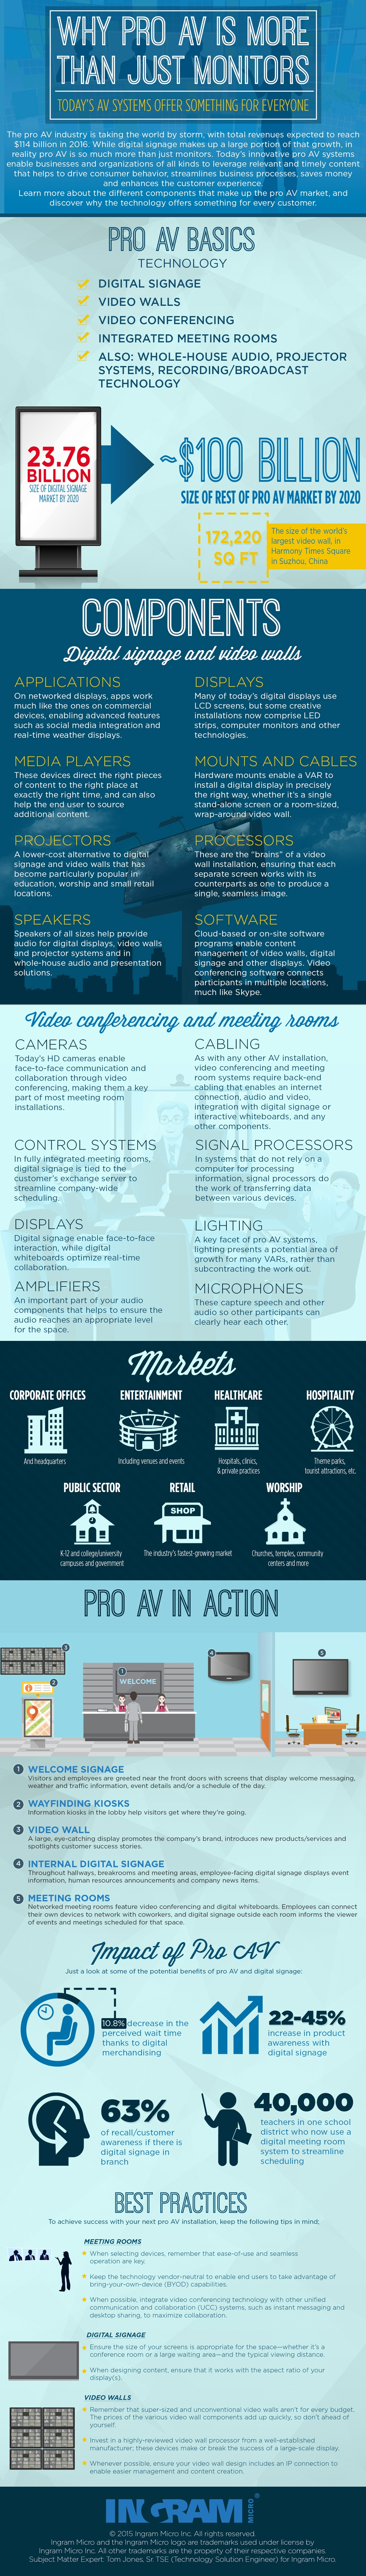 Infographic: Why Pro AV is More Than Just Monitors